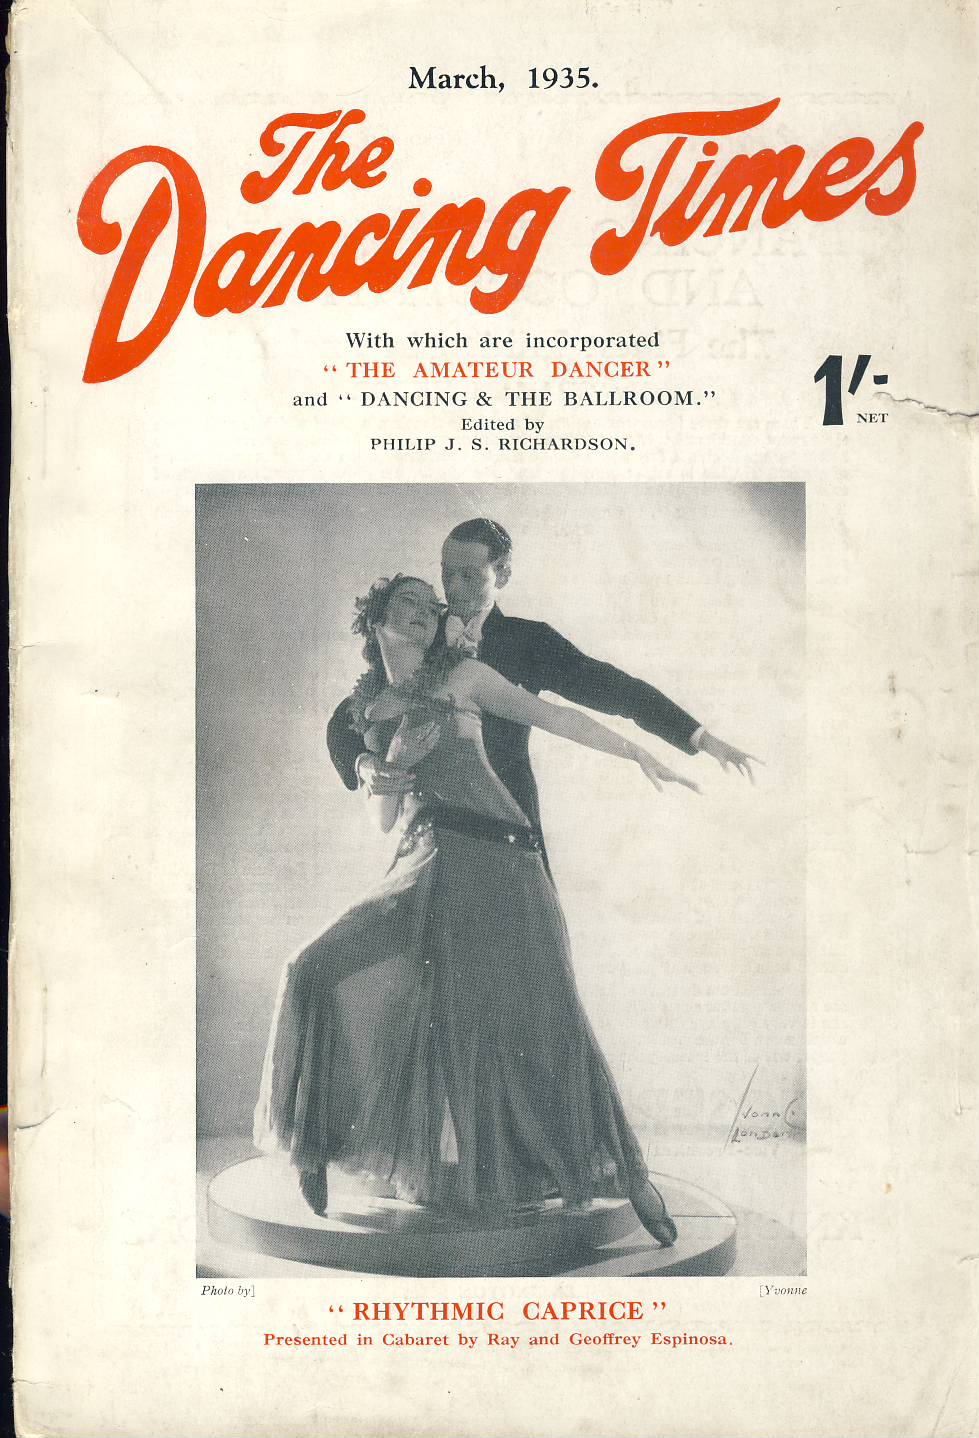 March 1935 The Dancing Times magazine Rhythmic Caprice VALERIAN SVETLOFF photo on inside front cover. A review of dancing in its many phases - containing articles and photos. Some vintage adverts for dancing schools. This is a vintage magazine. Text and photos clean and bright inside. The covers are badly marked with scuffs and tears to spines. Staples rusting so cover coming away from text. Please read the full description and see photo.